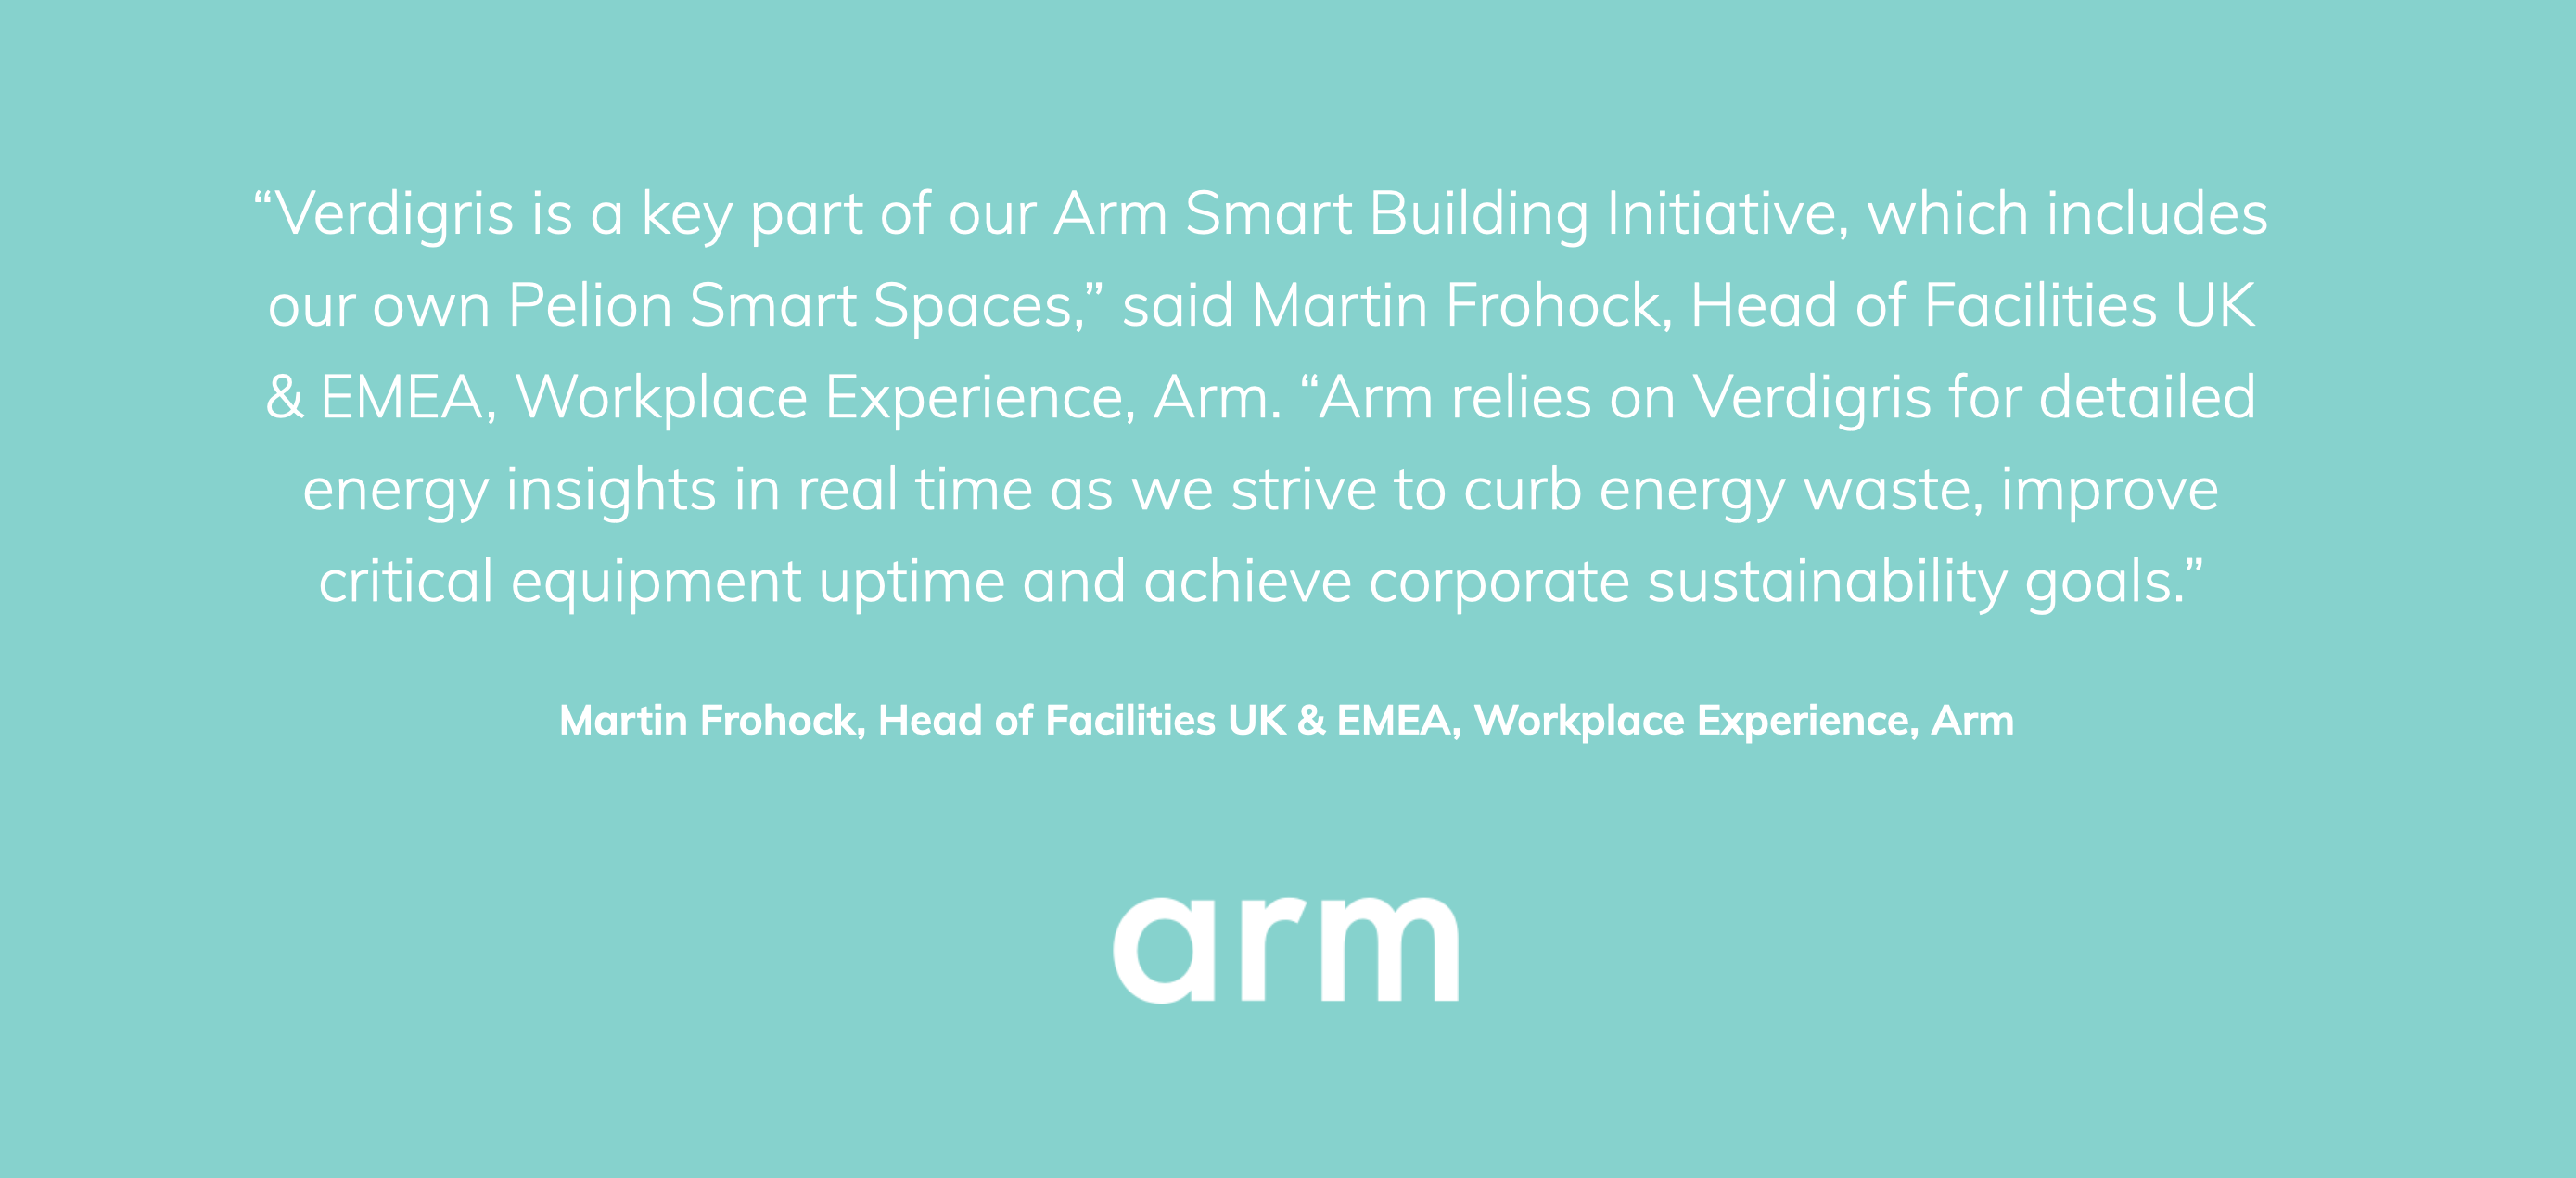 [arm case quote]